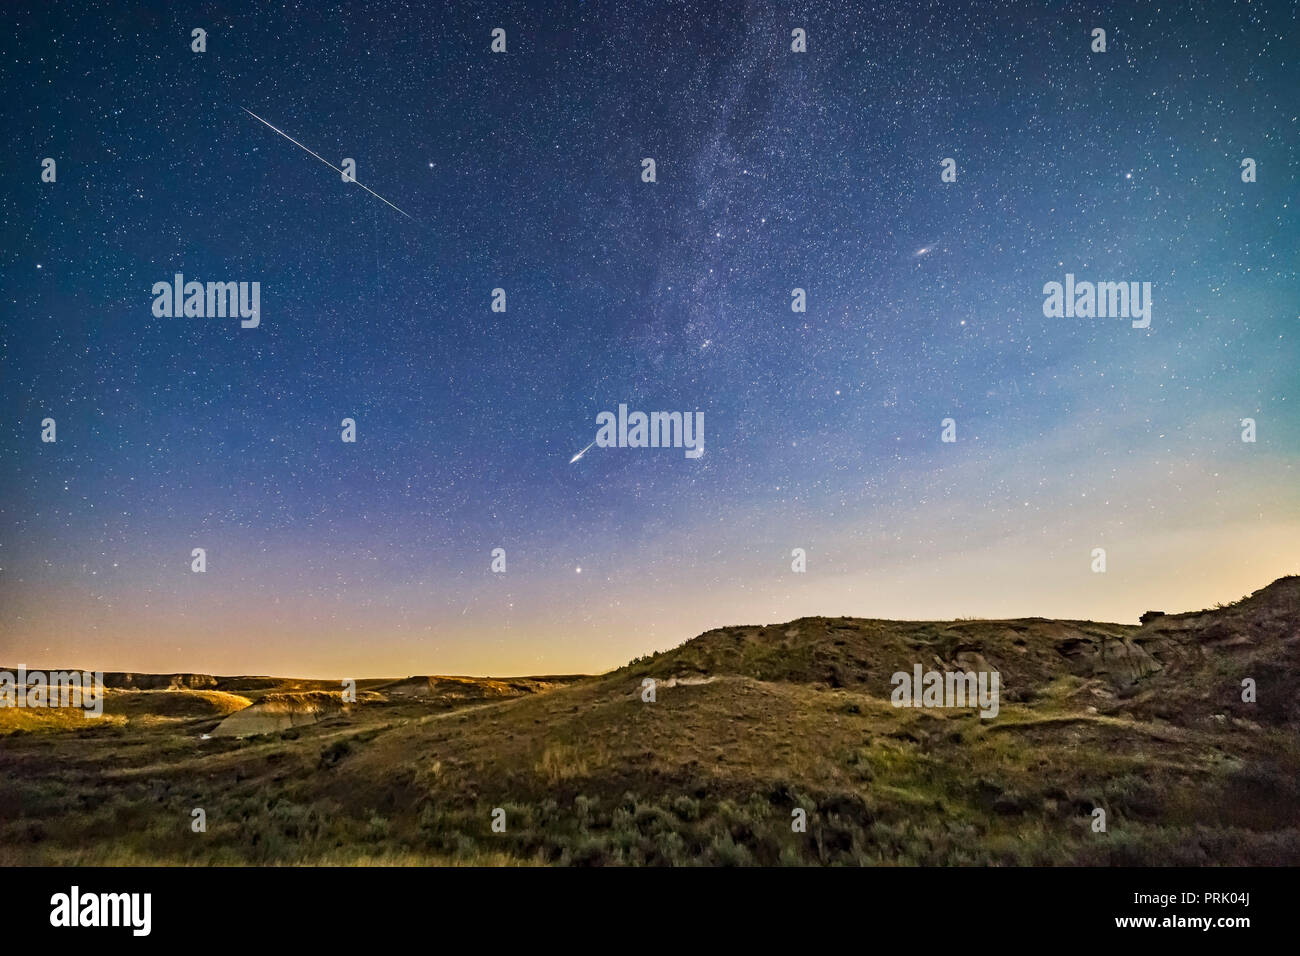 Two bright Perseid meteors (the best two from 3 hours of shooting) over the moonlit landscape of Dinosaur Provincial Park, Alberta, on August 12/13, 2 - Stock Image